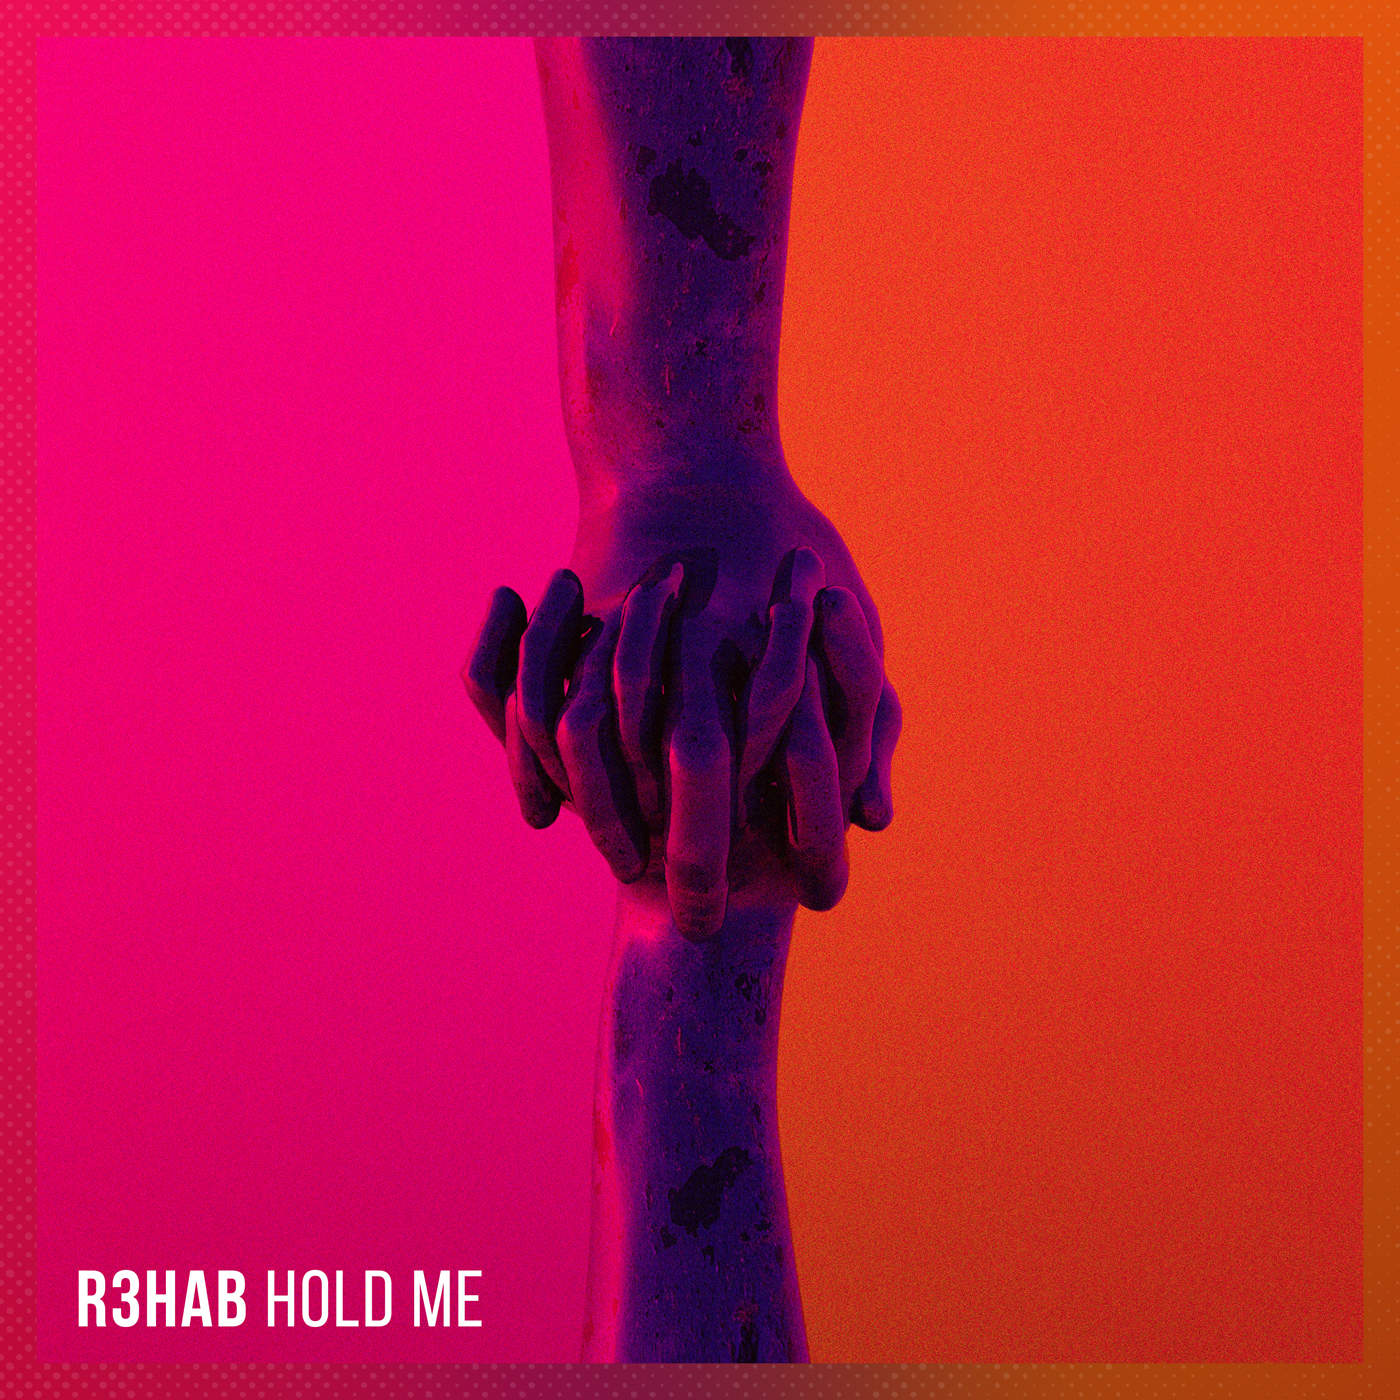 R3hab - Hold Me - Single Cover